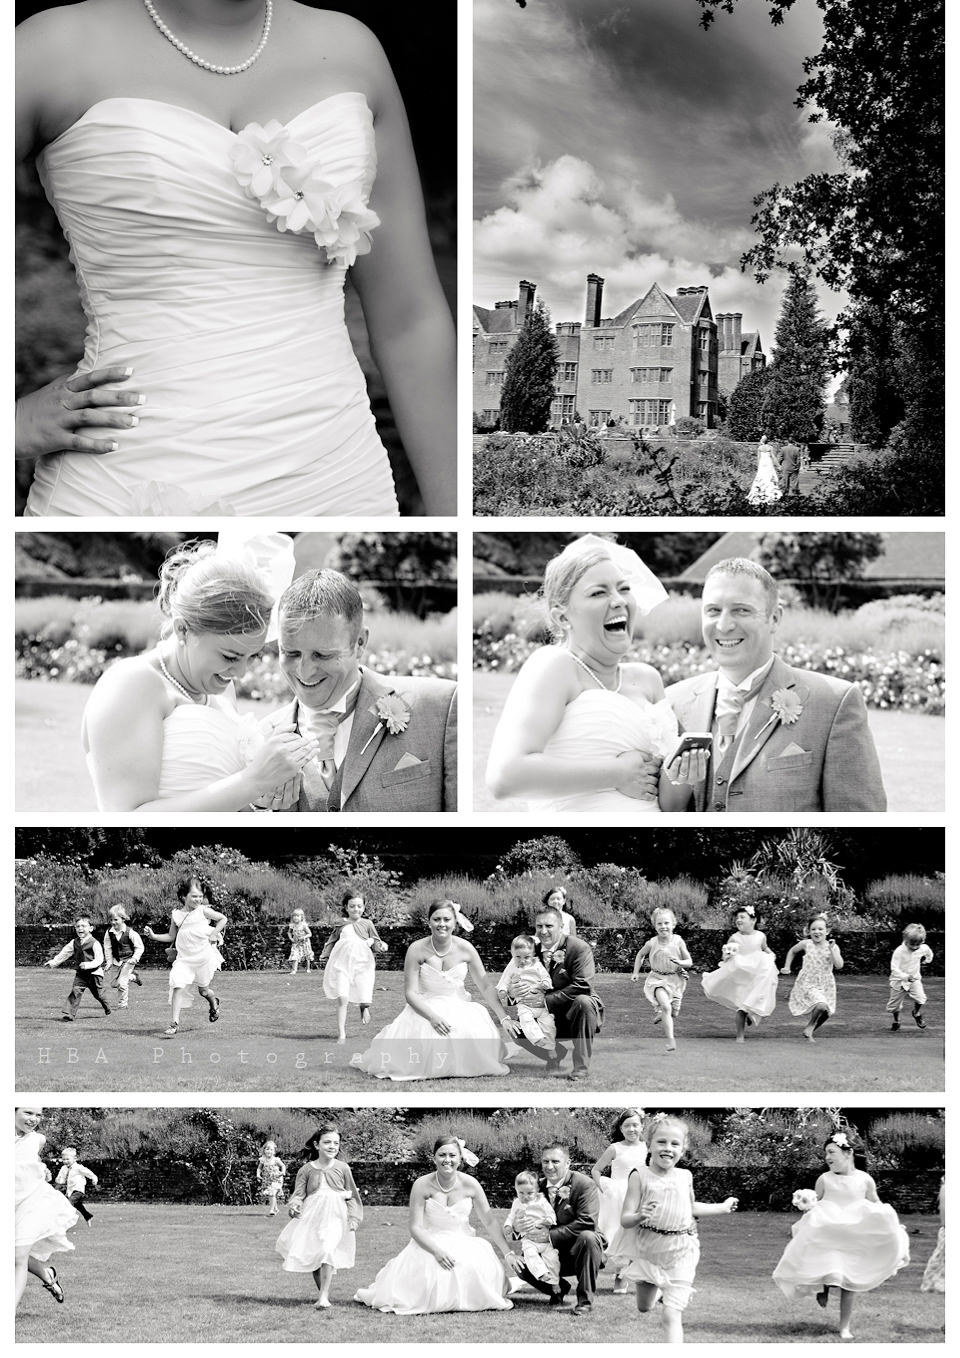 The wedding of Sam & Alan at New Place, Southampton. By contemporary photographers HBA Photography. Photos of the couple in the grounds of New Place